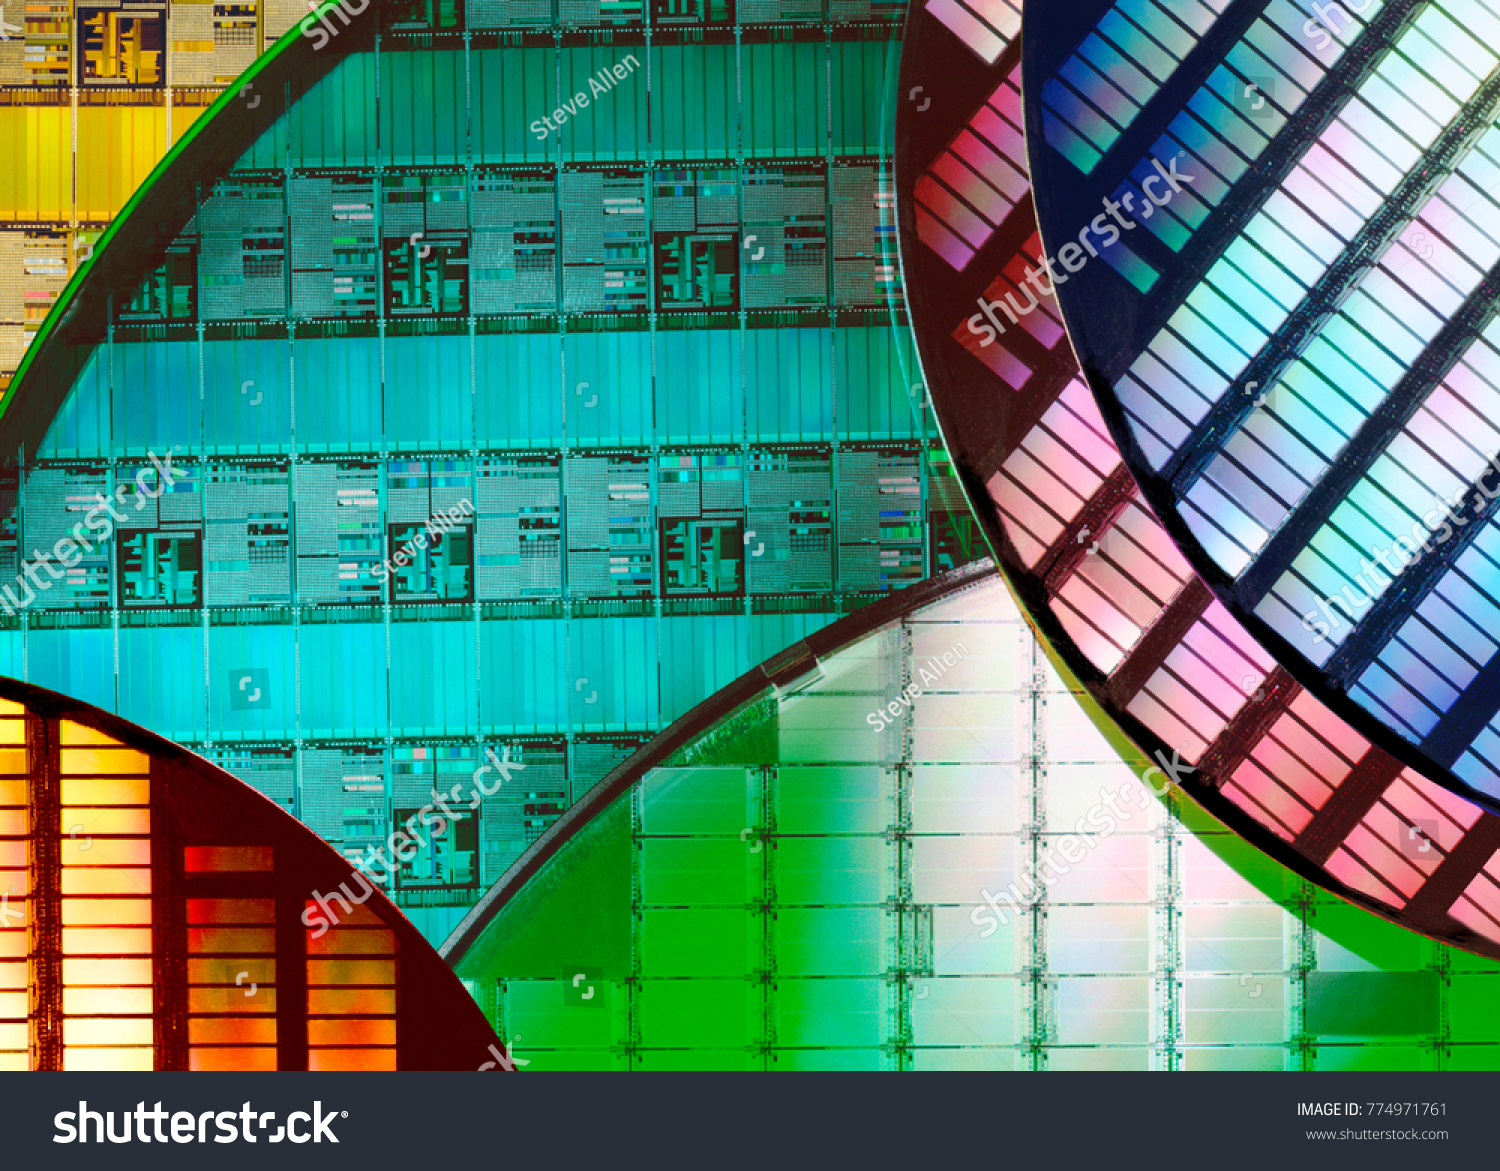 Silicon Wafers and Microcircuits - A wafer is a thin slice of semiconductor material, such as a crystalline silicon, used in electronics for the fabrication of integrated circuits.  #774971761